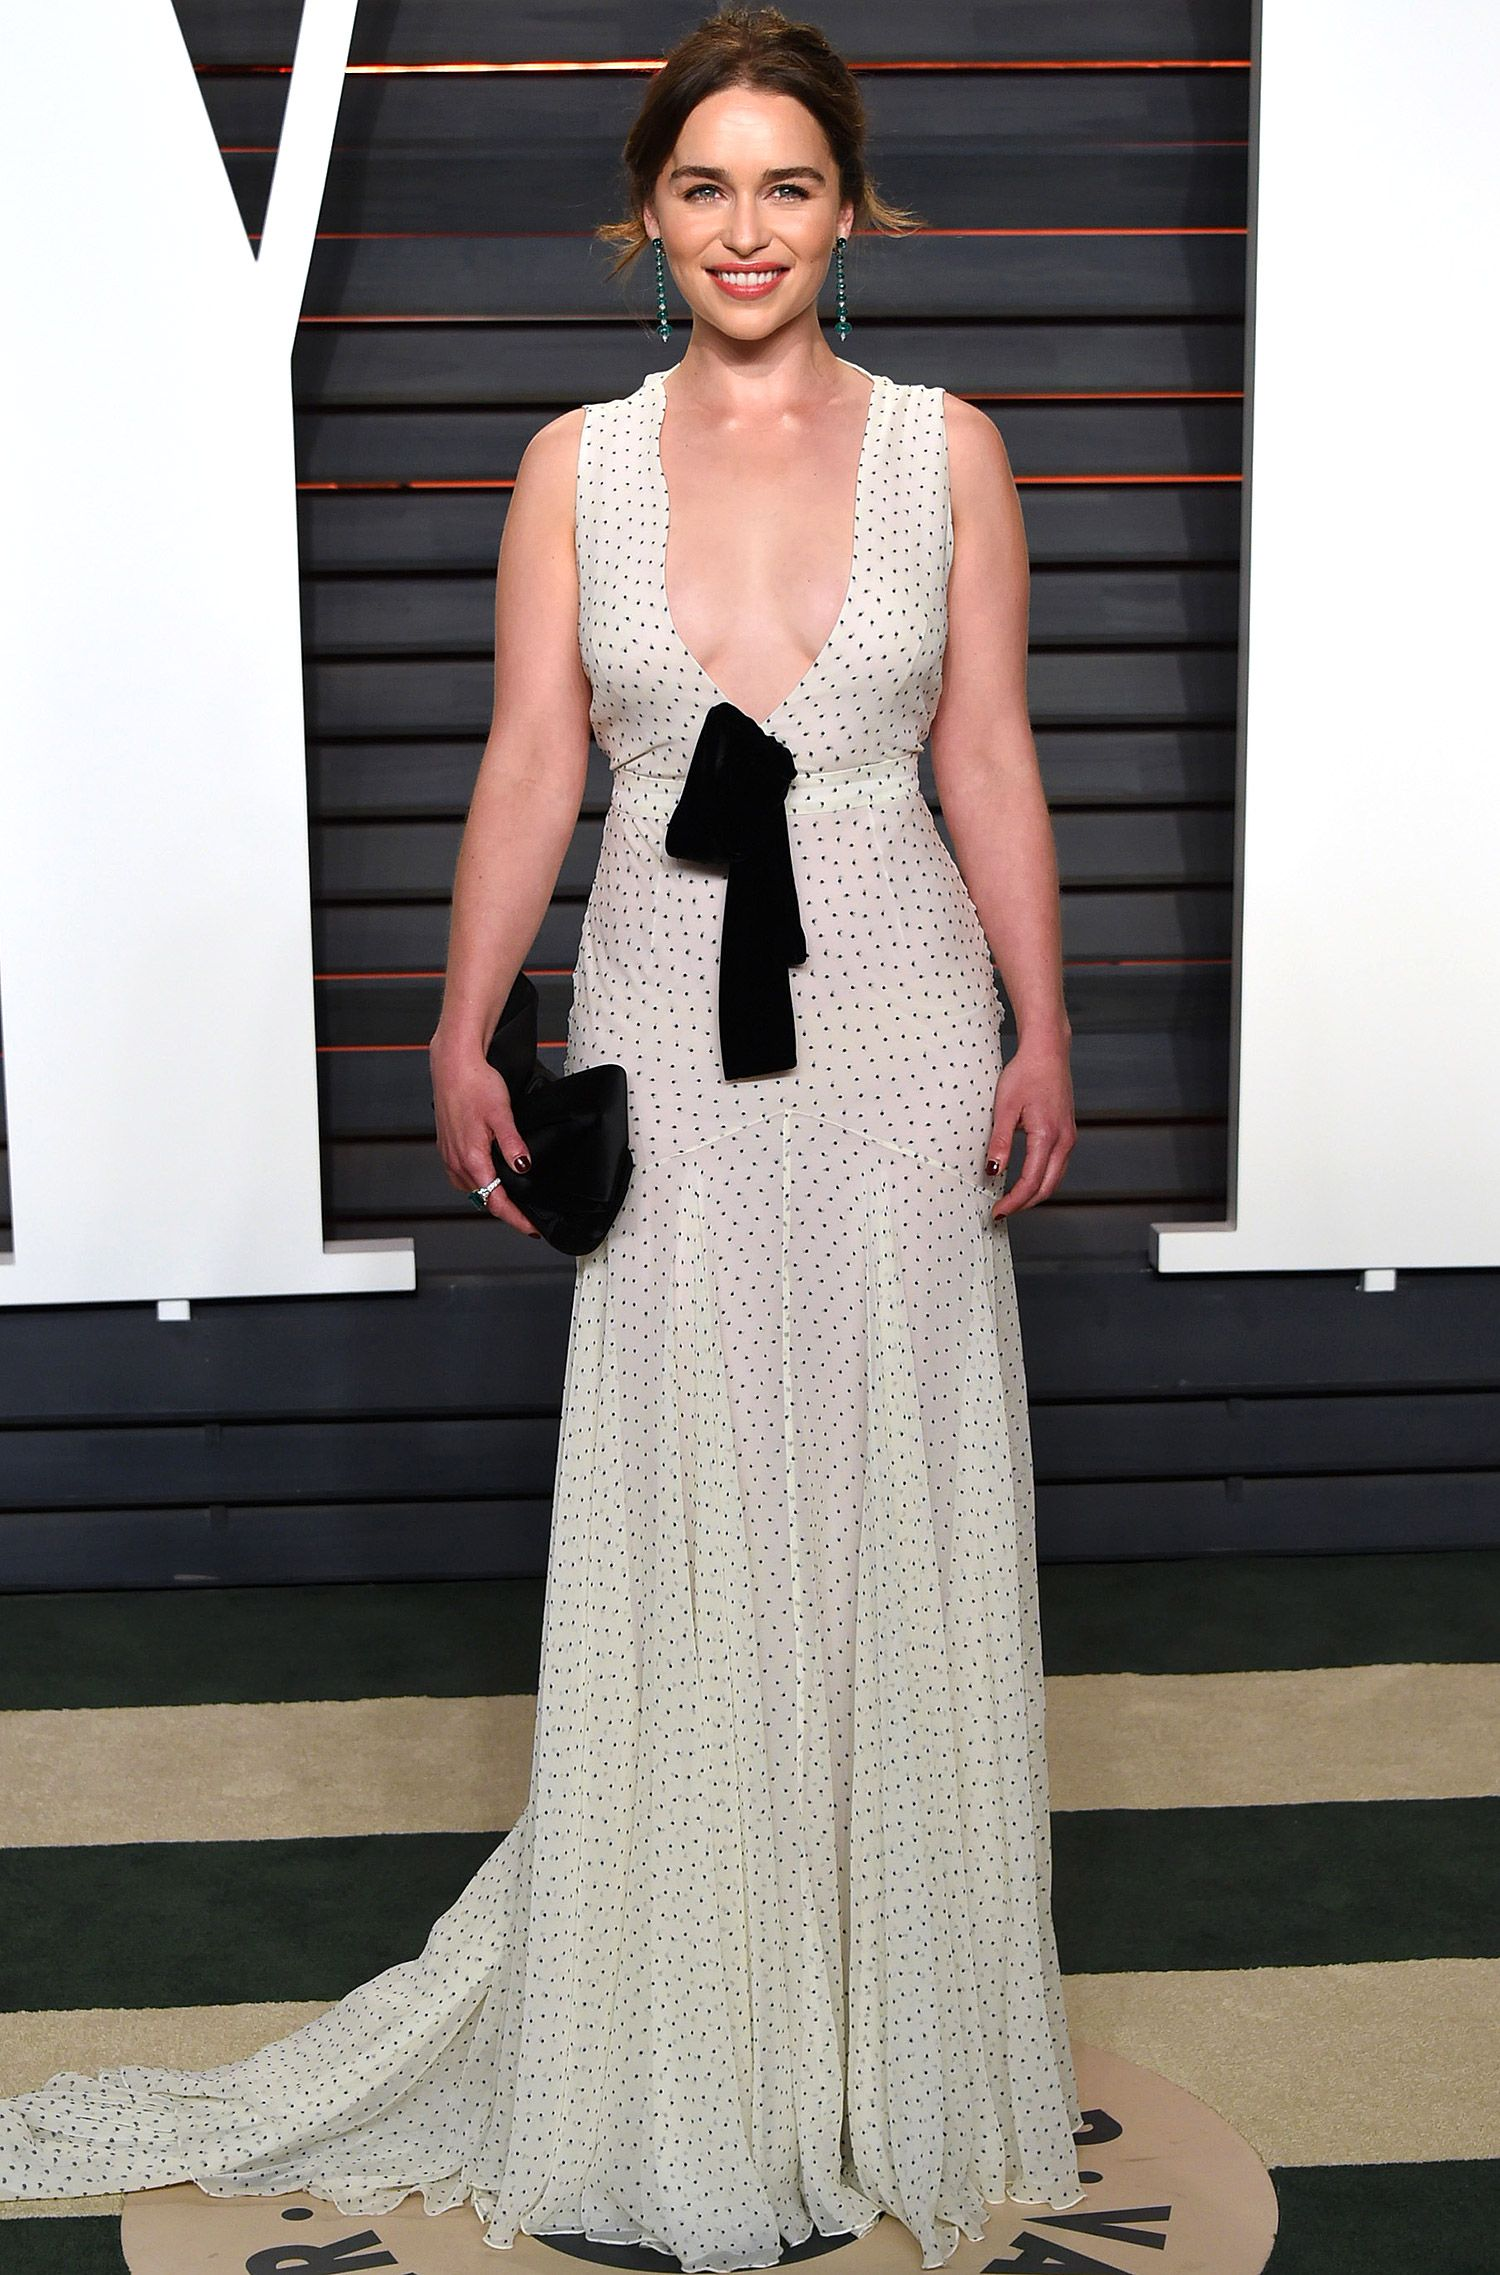 70+ Dresses You Didn't See (but Can't Miss) From Oscars Weekend